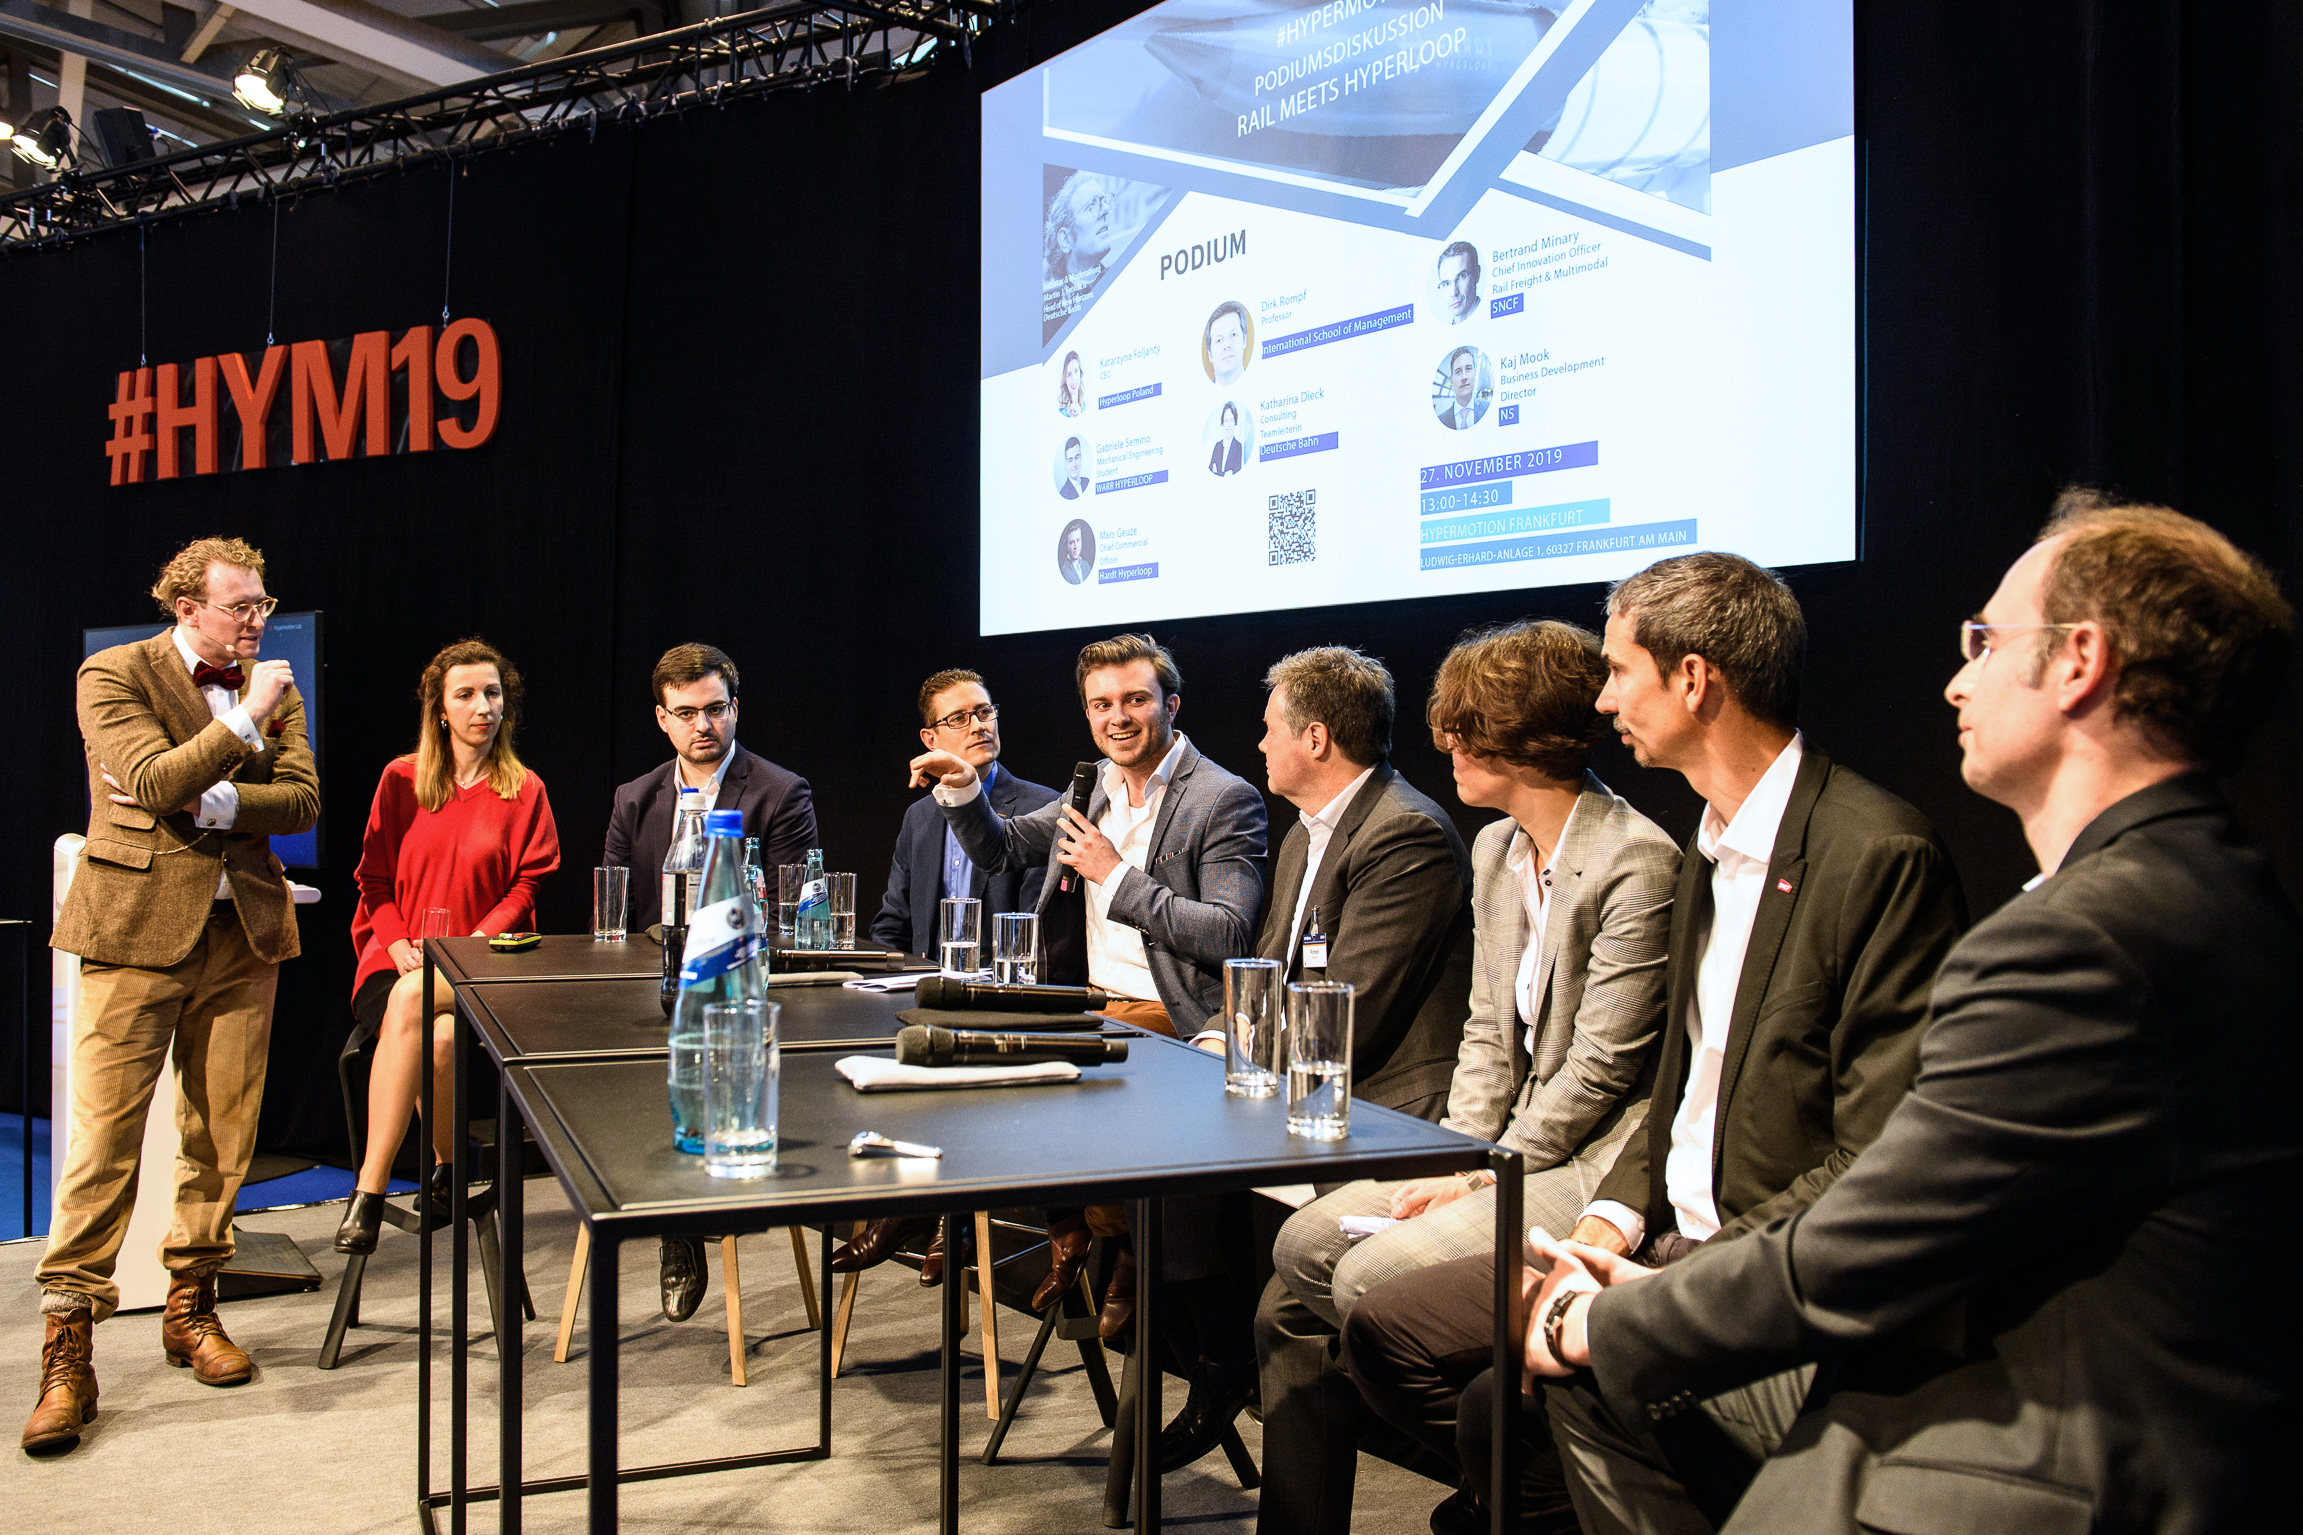 Podiumsdiskussion / Panel discussion: Rail meets Hyperloop